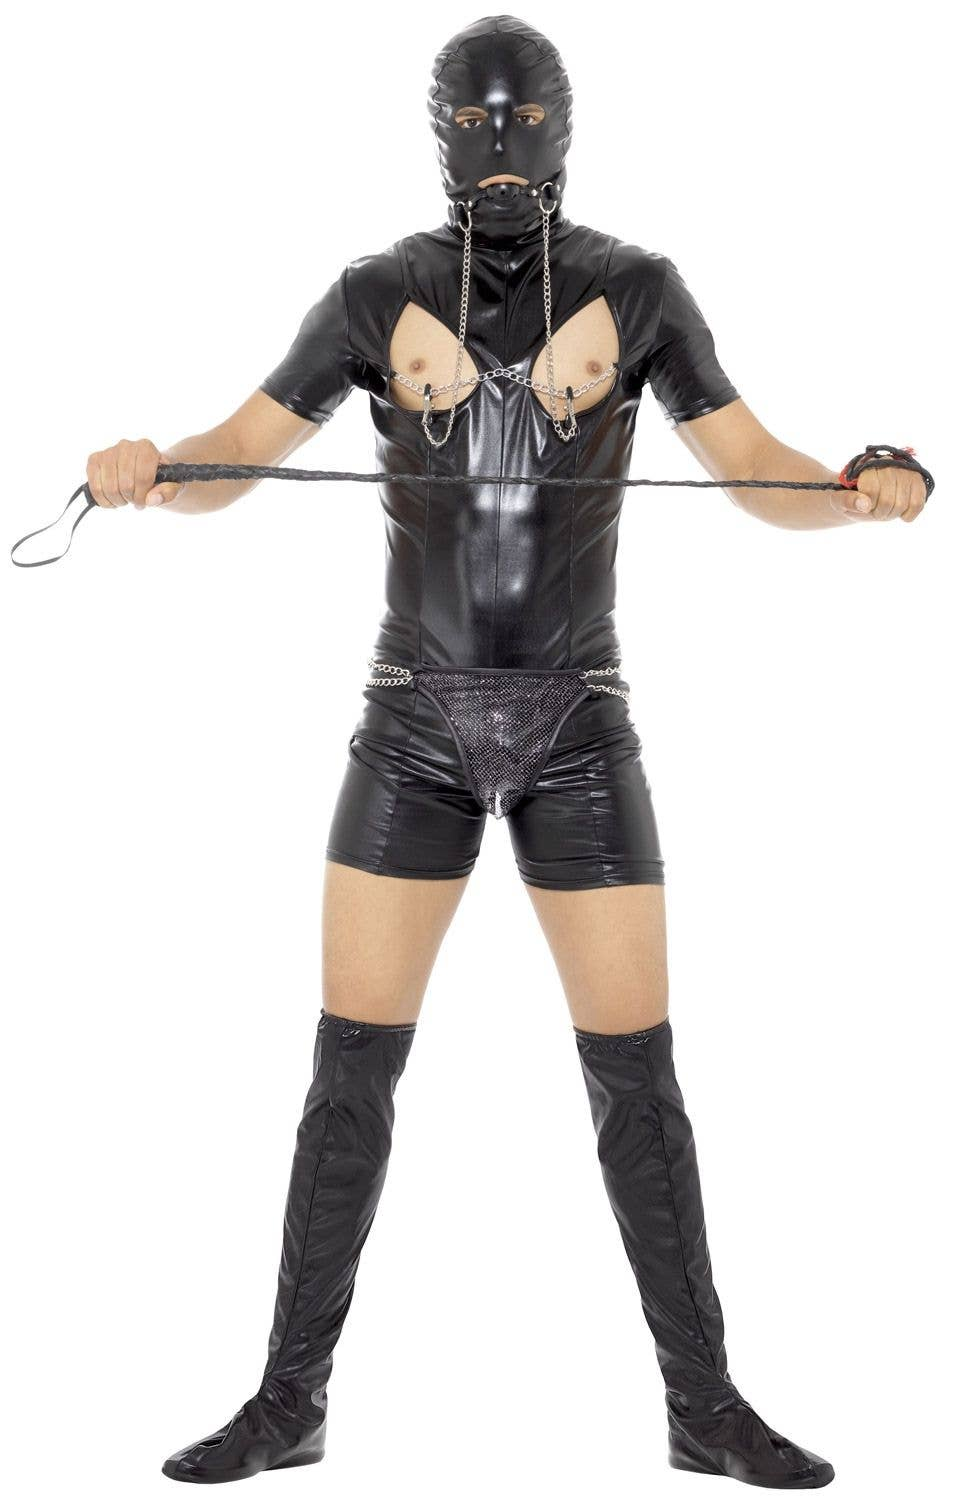 bondage gimp men's costume | stag party funny gimp bondage costume